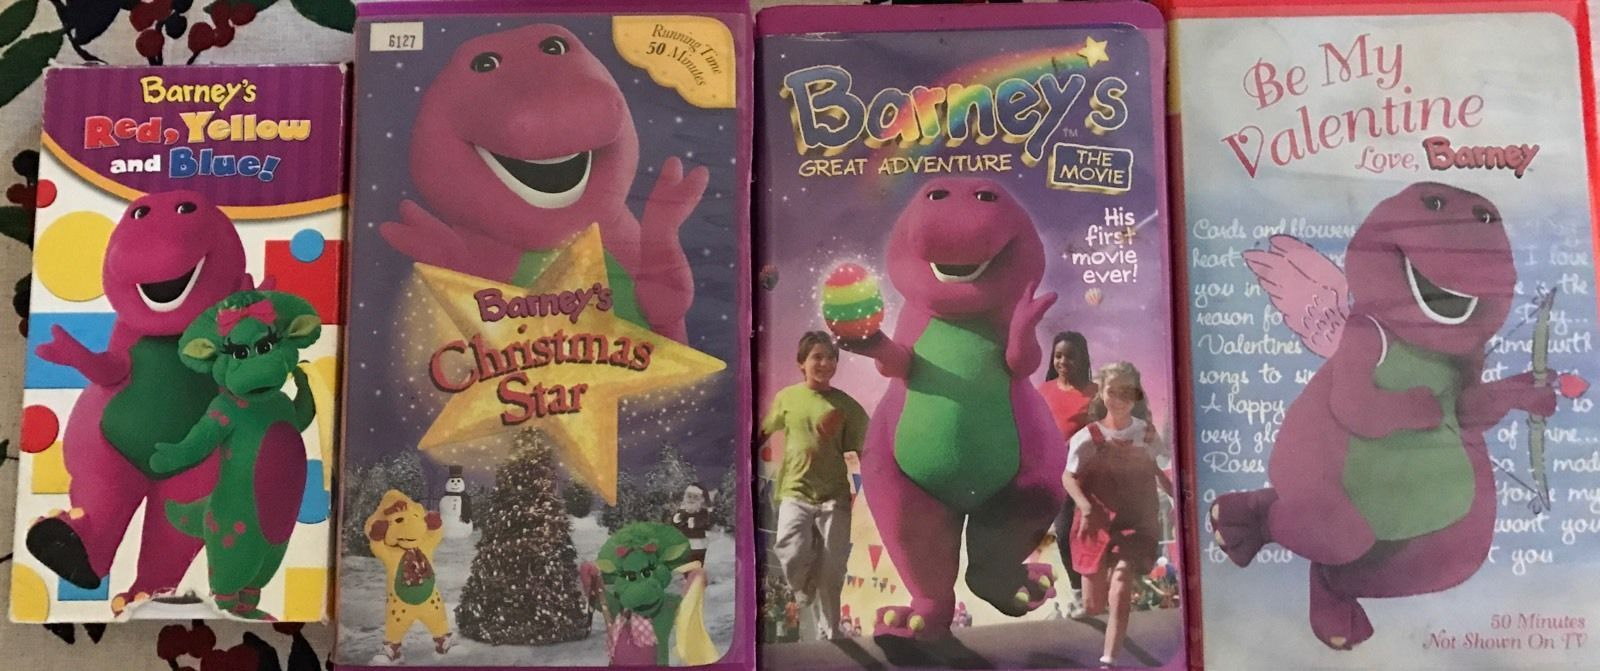 Cool Barney Vhs Lot Of 4 Be My Valentine Great Adventure Zoo Tv Movie Check More At Http Harmonisproduction Com Barney Vhs Lot Of 4 Be My Valentine Great Ad